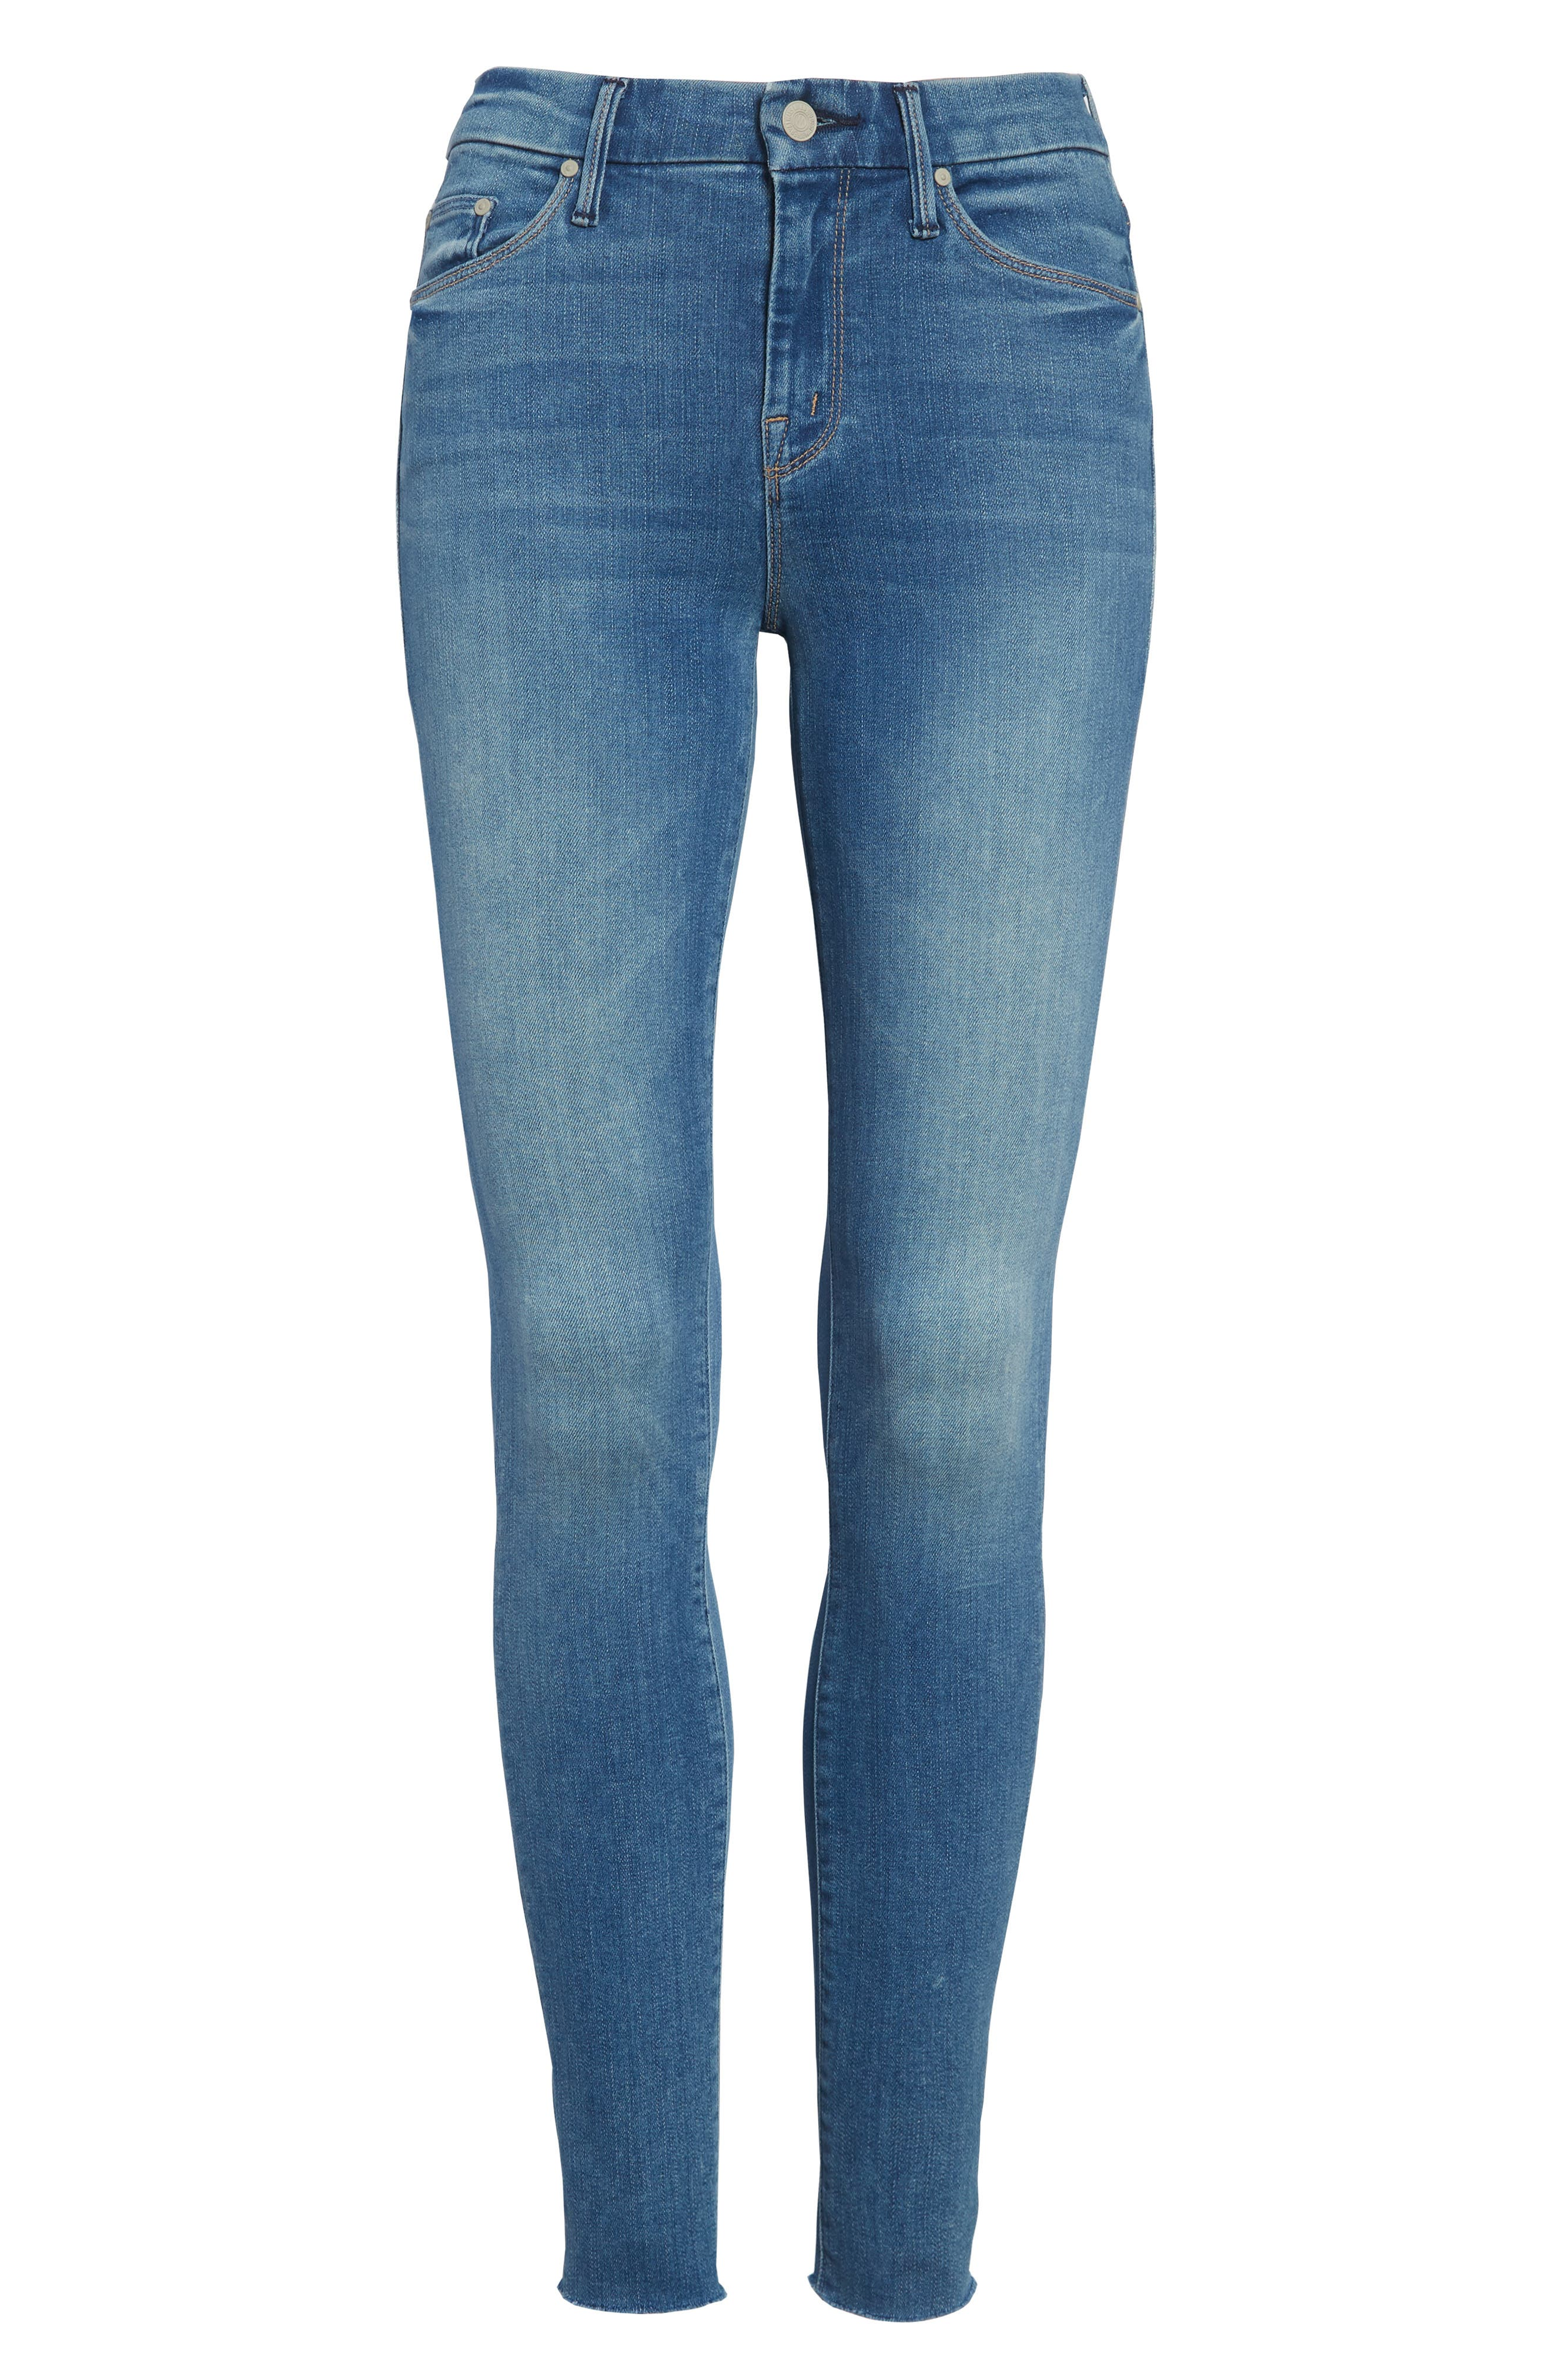 'The Looker' Fray Ankle Jeans,                         Main,                         color, 420